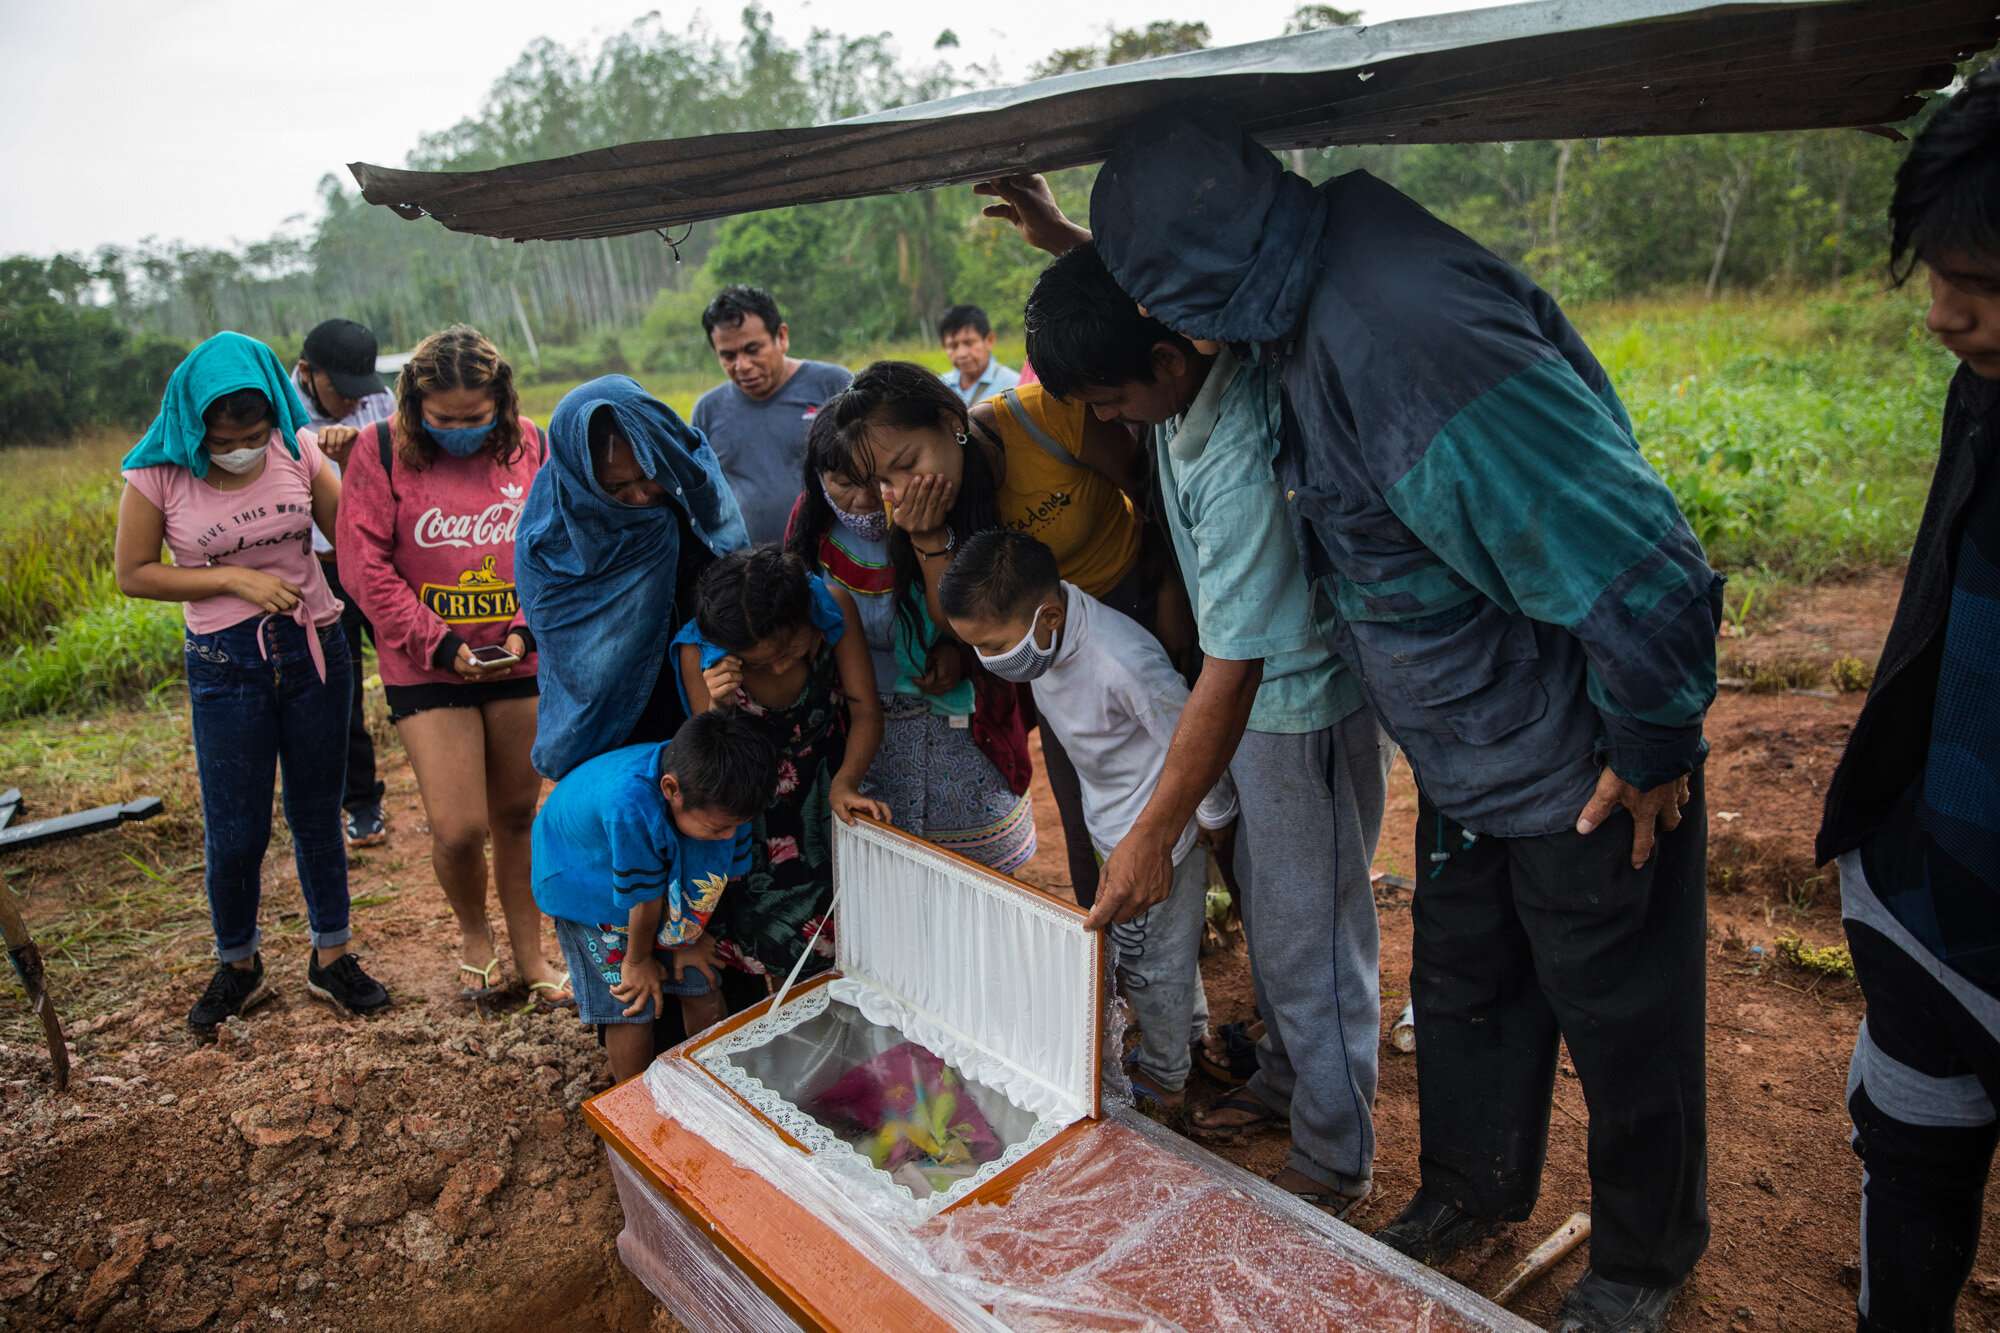 Family members peer into the coffin that contains the remains of Manuela Chavez, who died from symptoms related to the coronavirus at the age of 88, during a burial service in the Shipibo indigenous community of Pucallpa, in Peru's Ucayali region, on Aug. 31, 2020. (AP Photo/Rodrigo Abd)